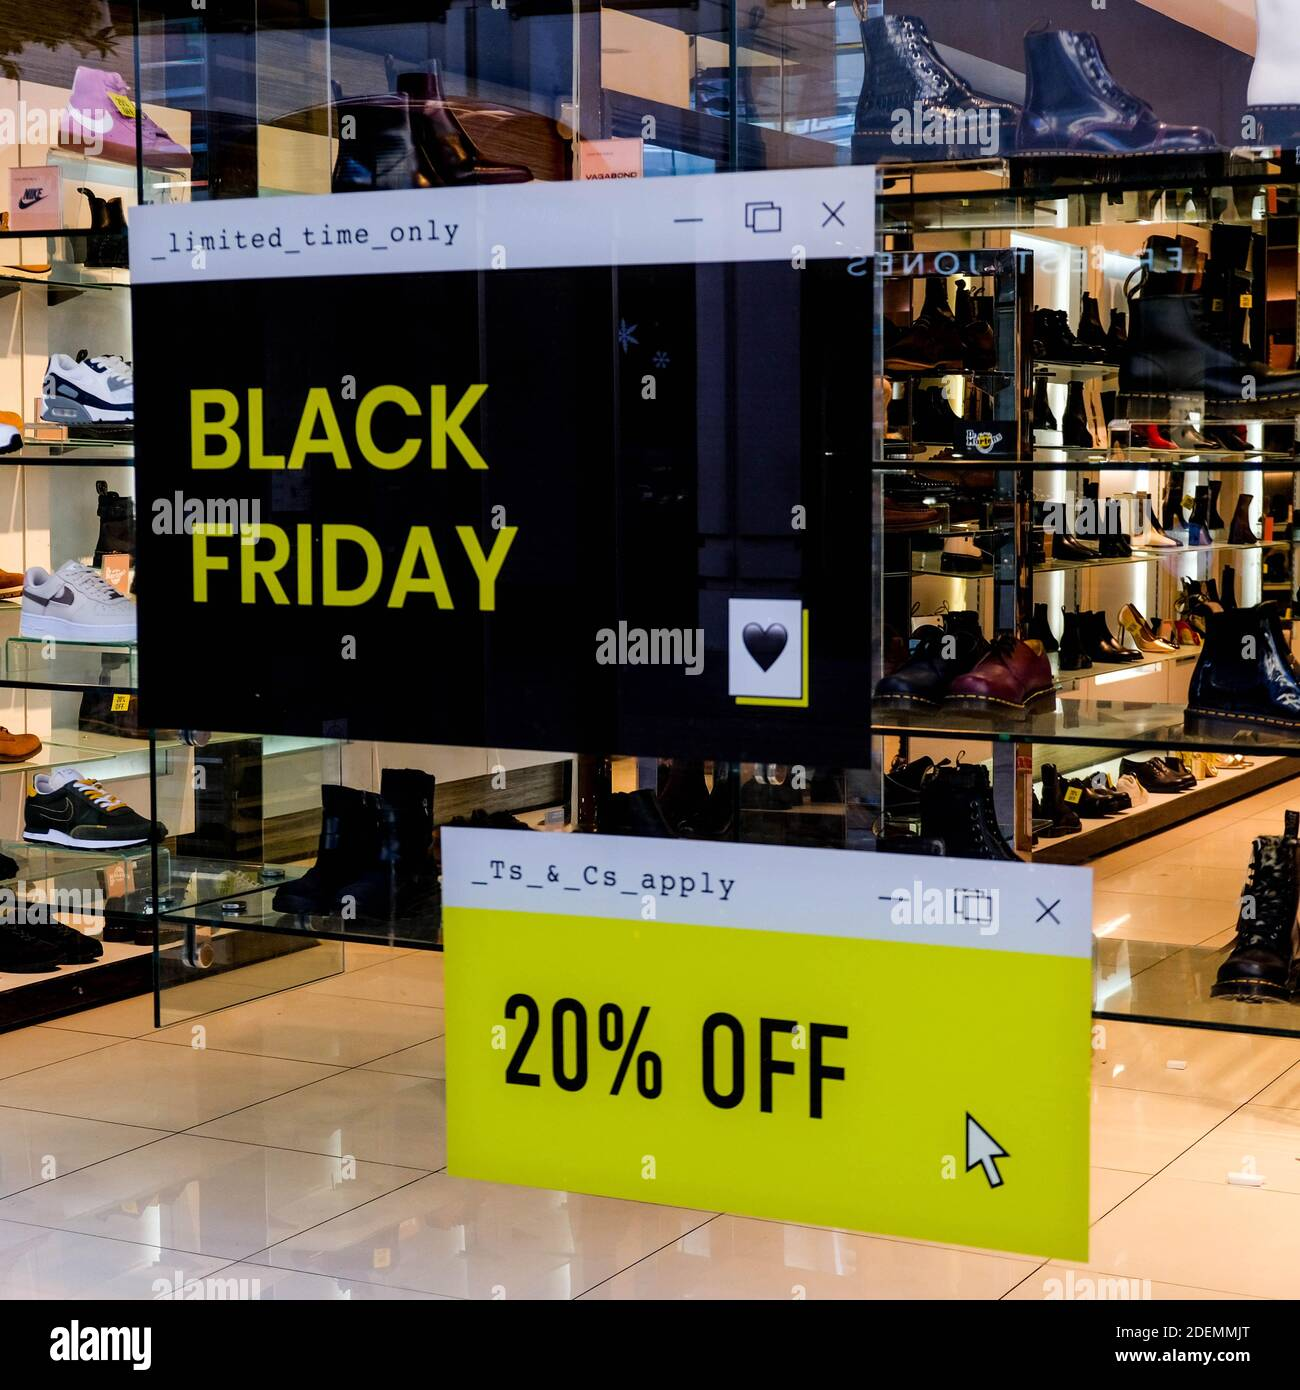 London UK, December 01 2020, Shop Windowns Advertising Black Friday Discounts To Boost Trade During COVID-19 Lockdown Stock Photo